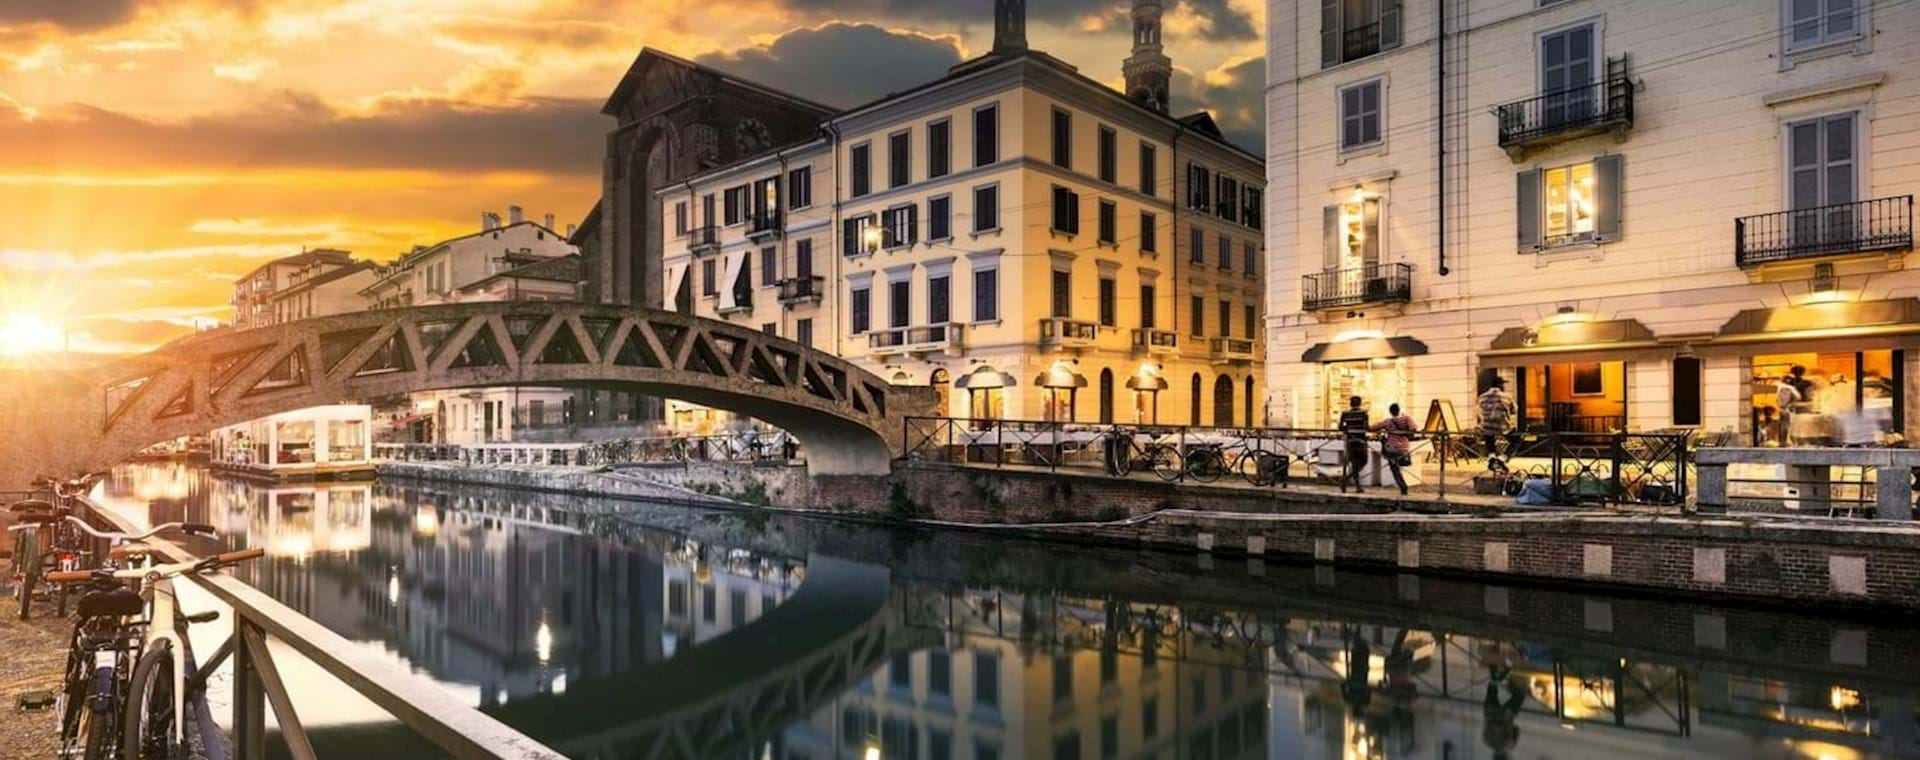 Milan Regional Food and Wine Evening Experience on the Ancient Canals